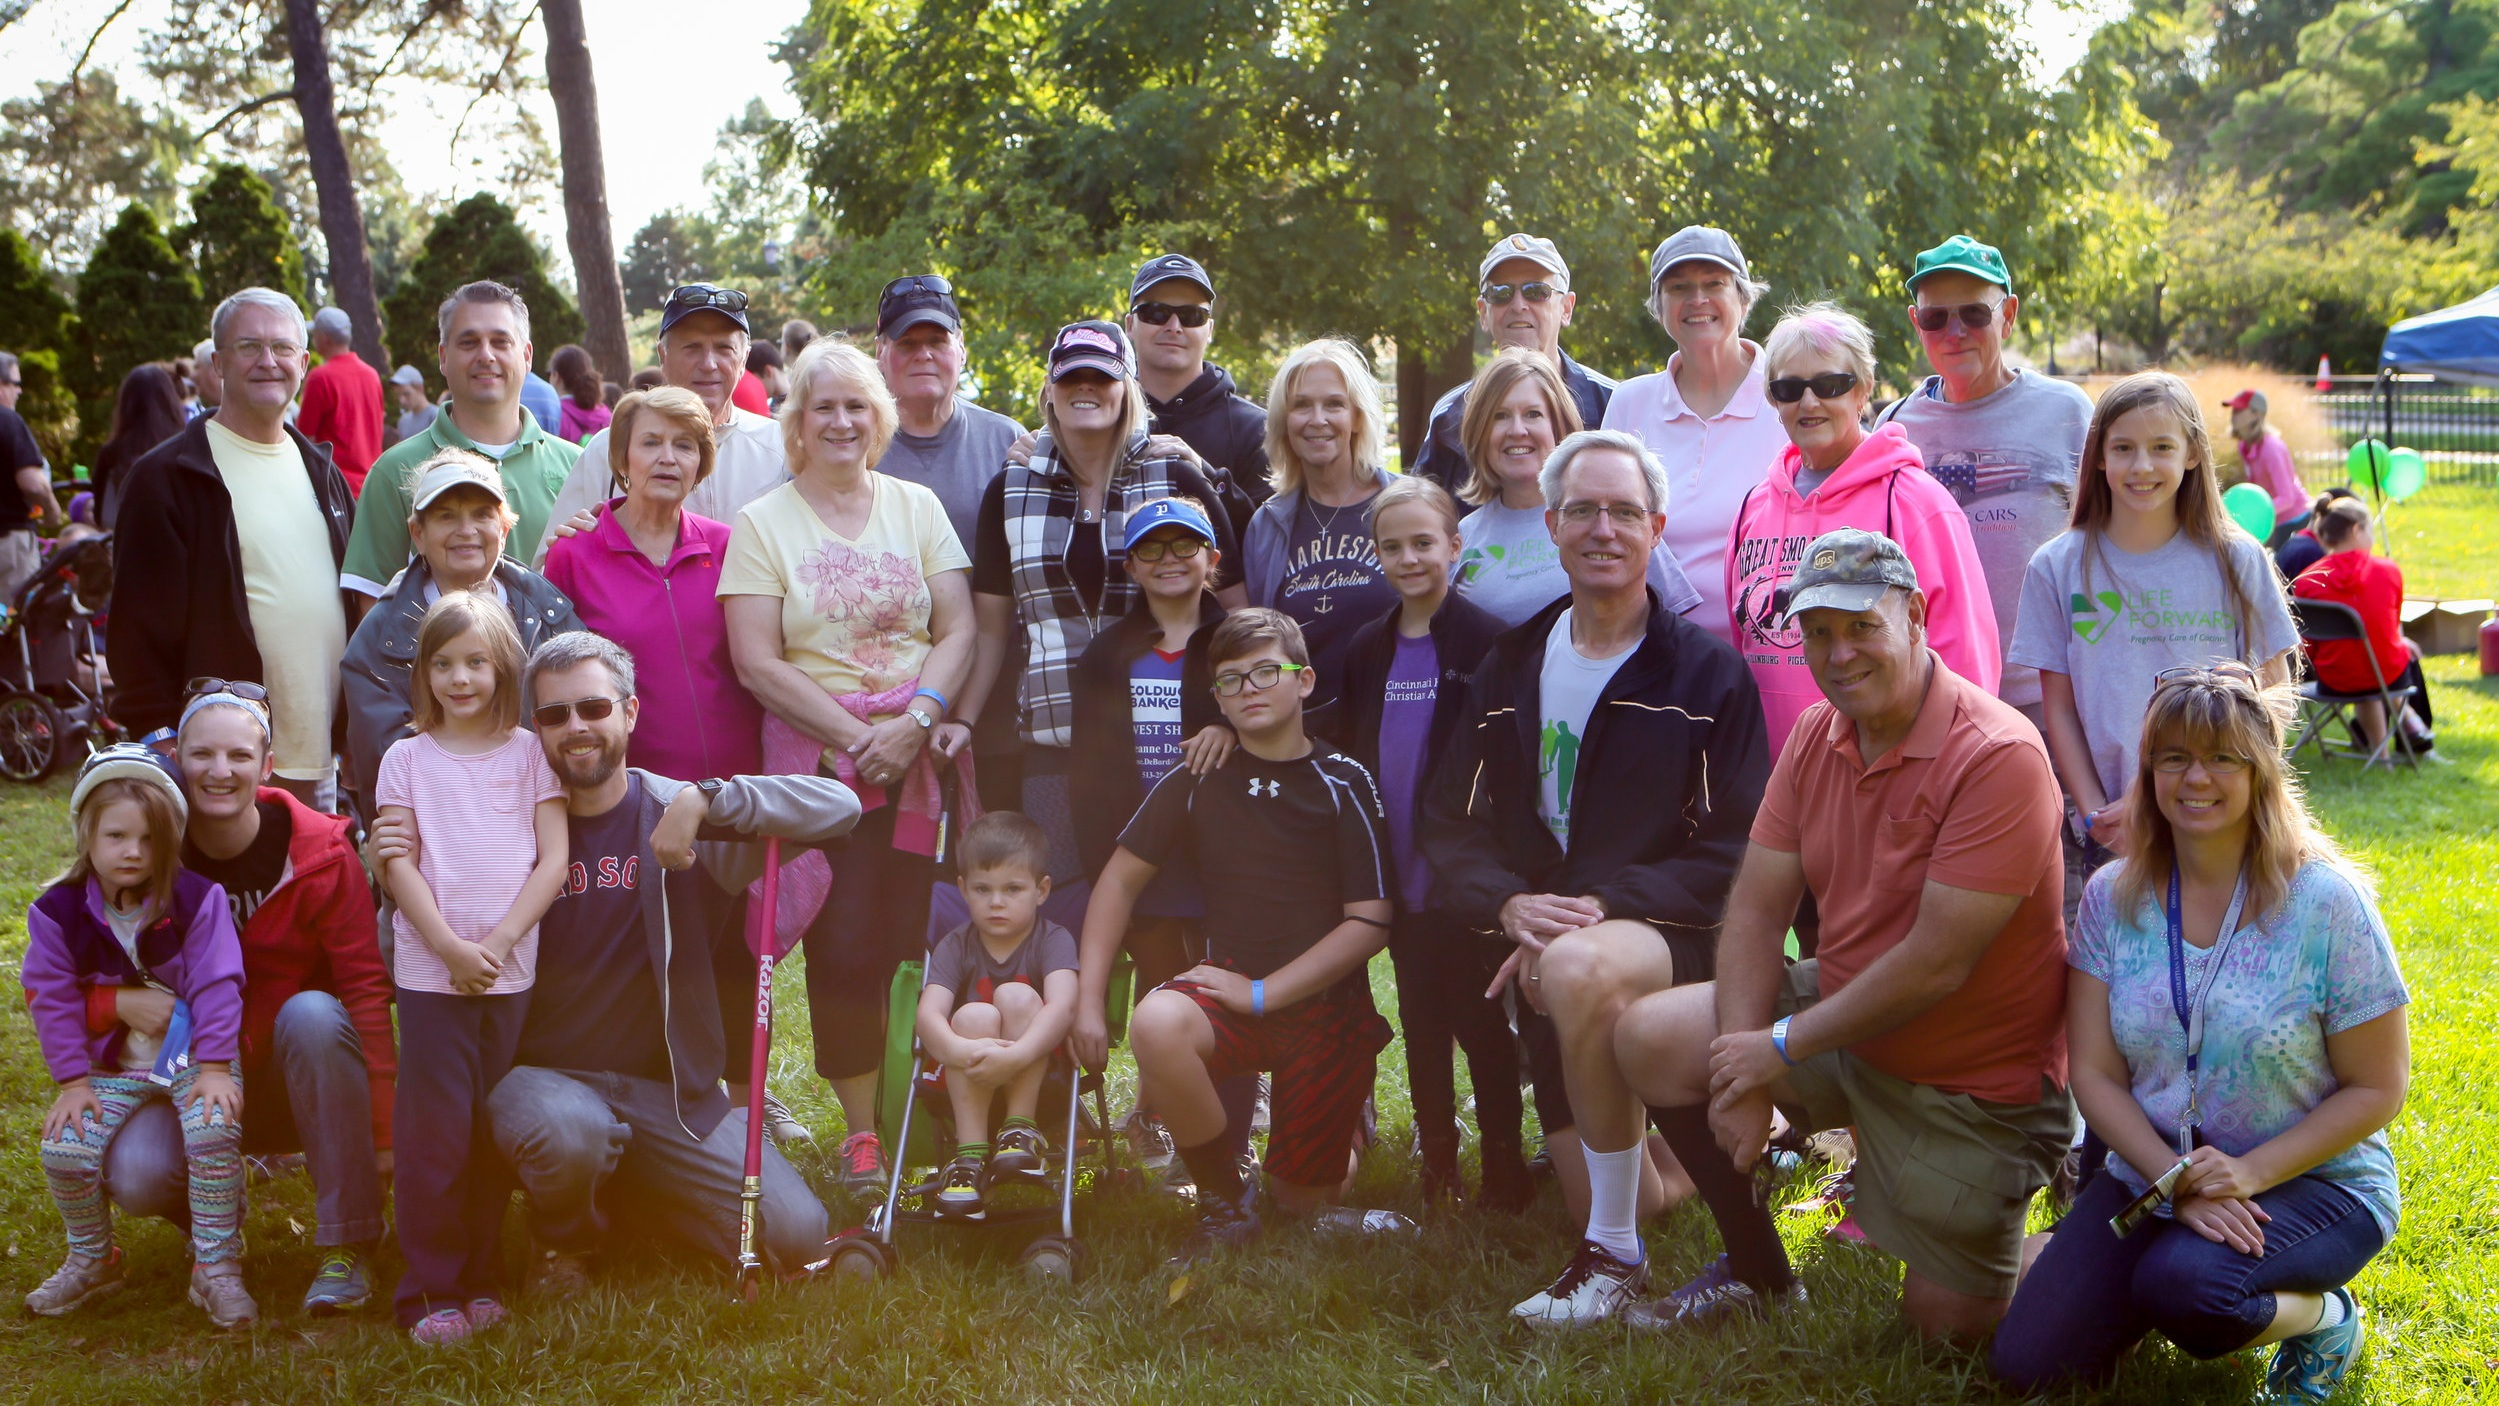 Recruit Others to REGISTER TO WALK -